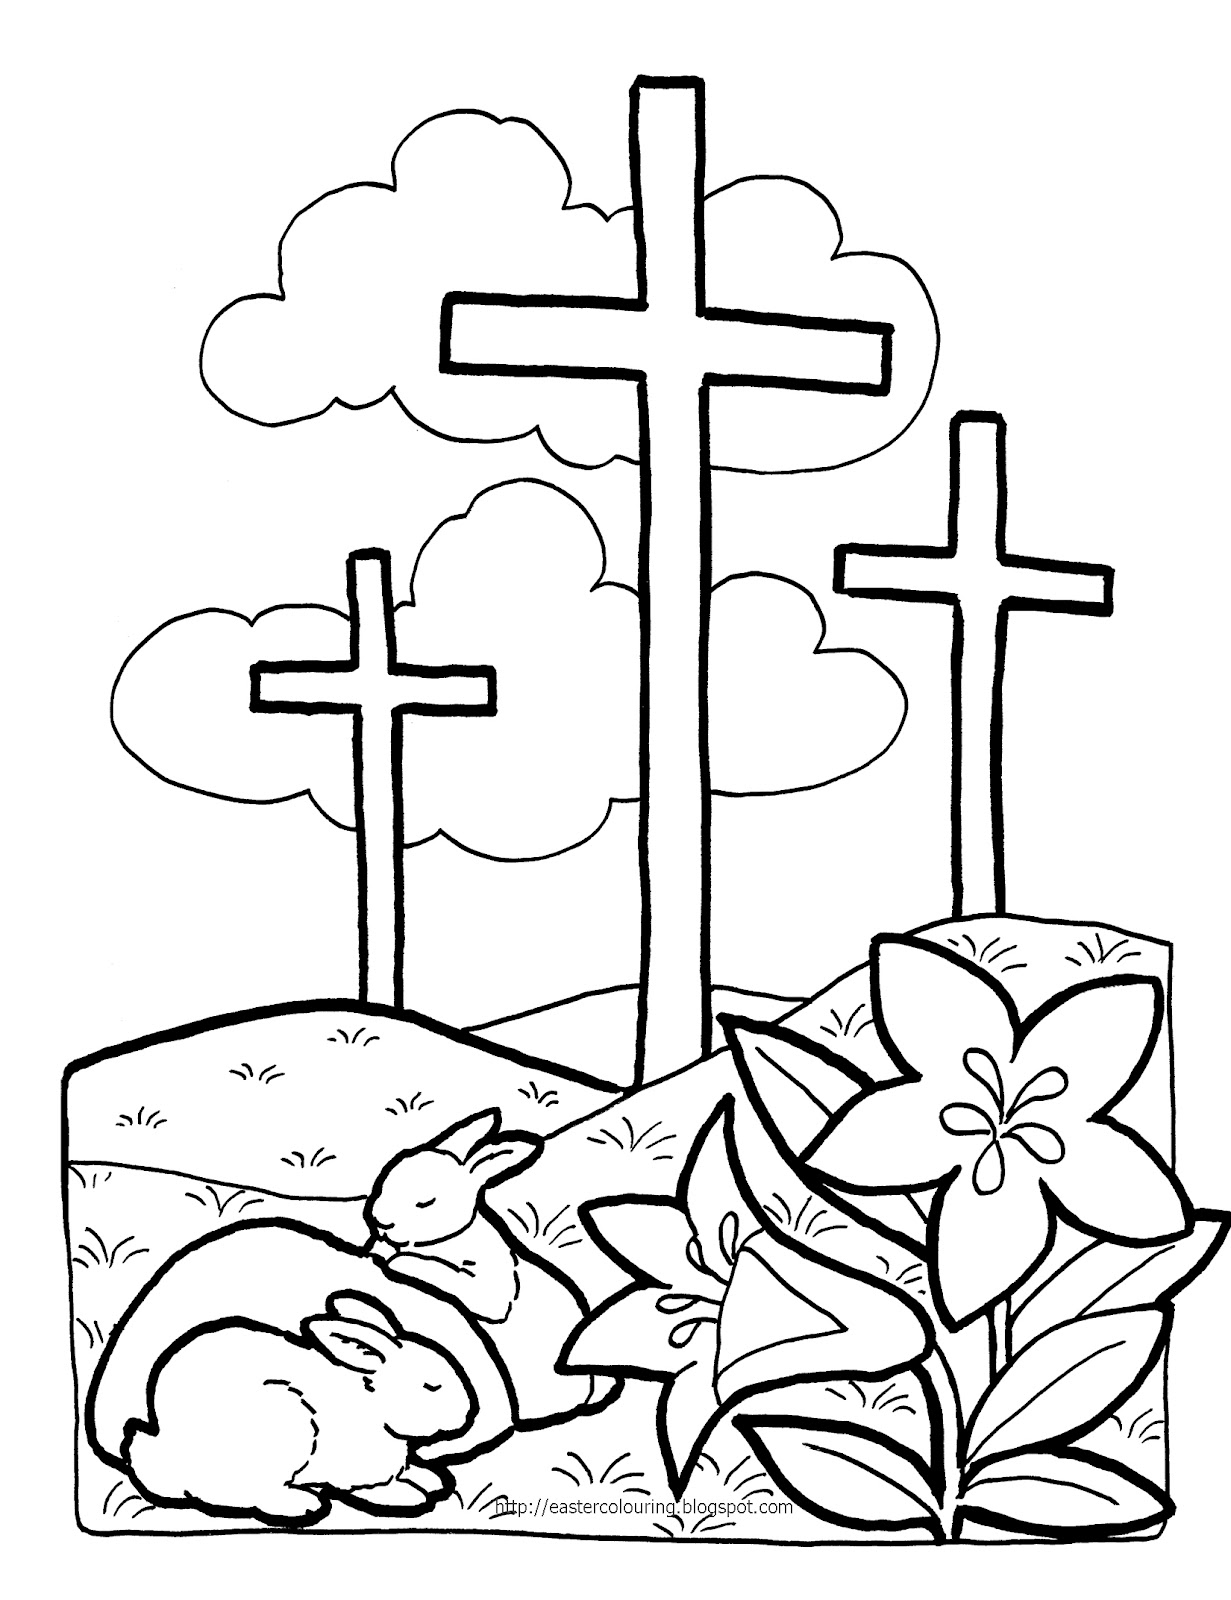 Easter Colouring Religious Easter Coloring Pages